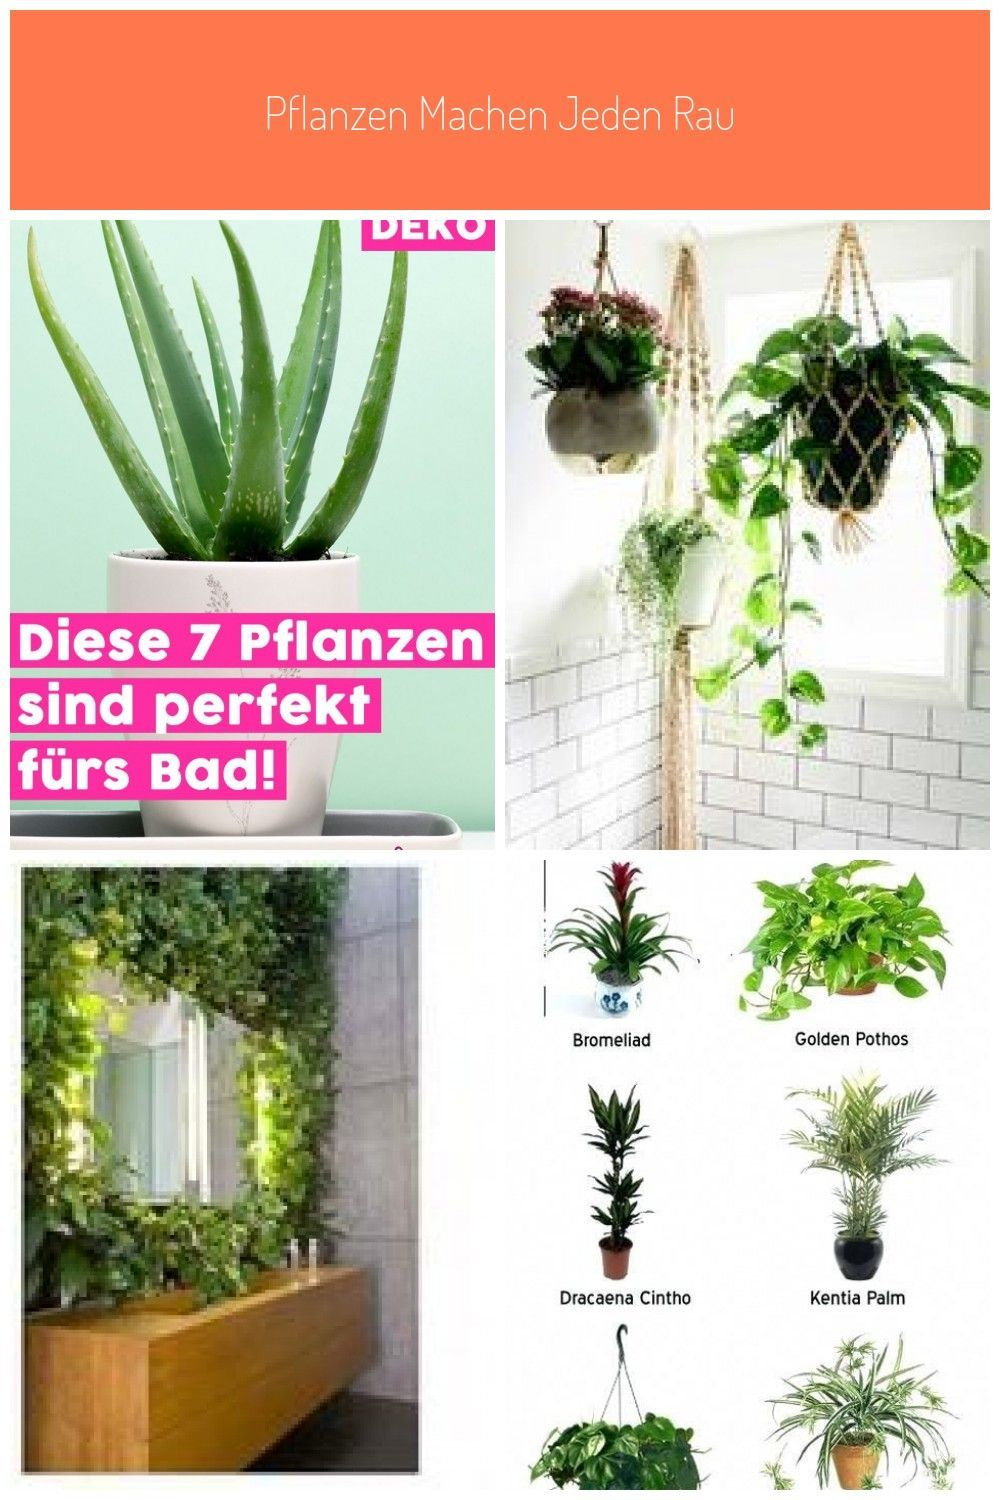 Plants Make Every Room More Cozy And Beautiful But Not Every Plant Leads In 2020 Pflanzen Badezimmerpflanzen Pflanzen Im Badezimmer